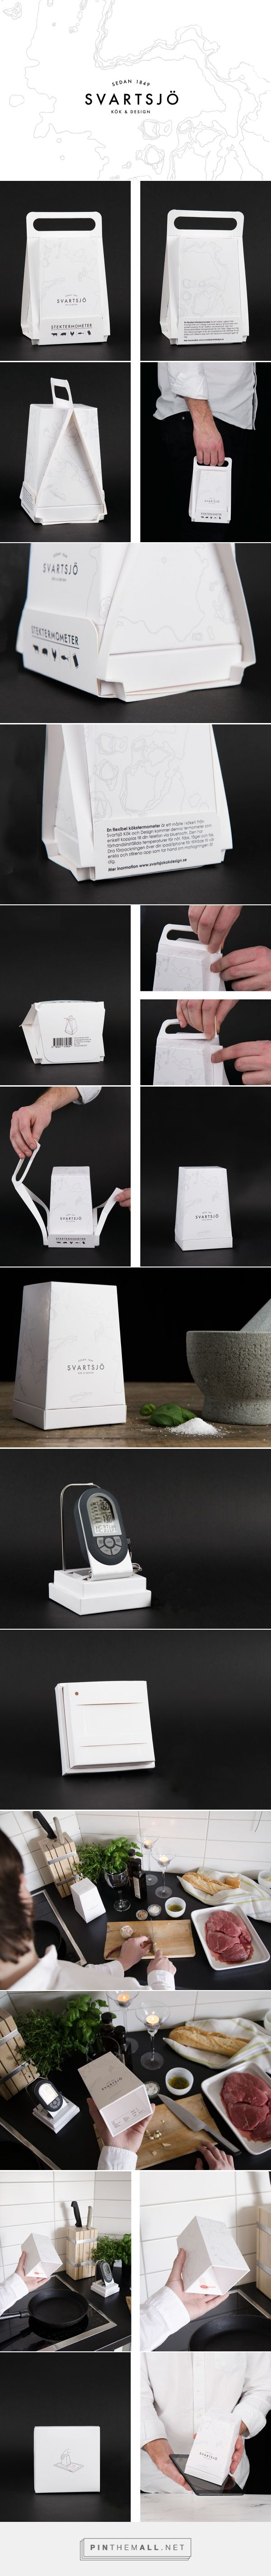 Svartsjö meat thermometer packaging design with heat sensitive ink by Josefine Johansson, Kinna Andersson, Viktor Andersson - http://www.packagingoftheworld.com/2016/08/svartsjo-concept.html